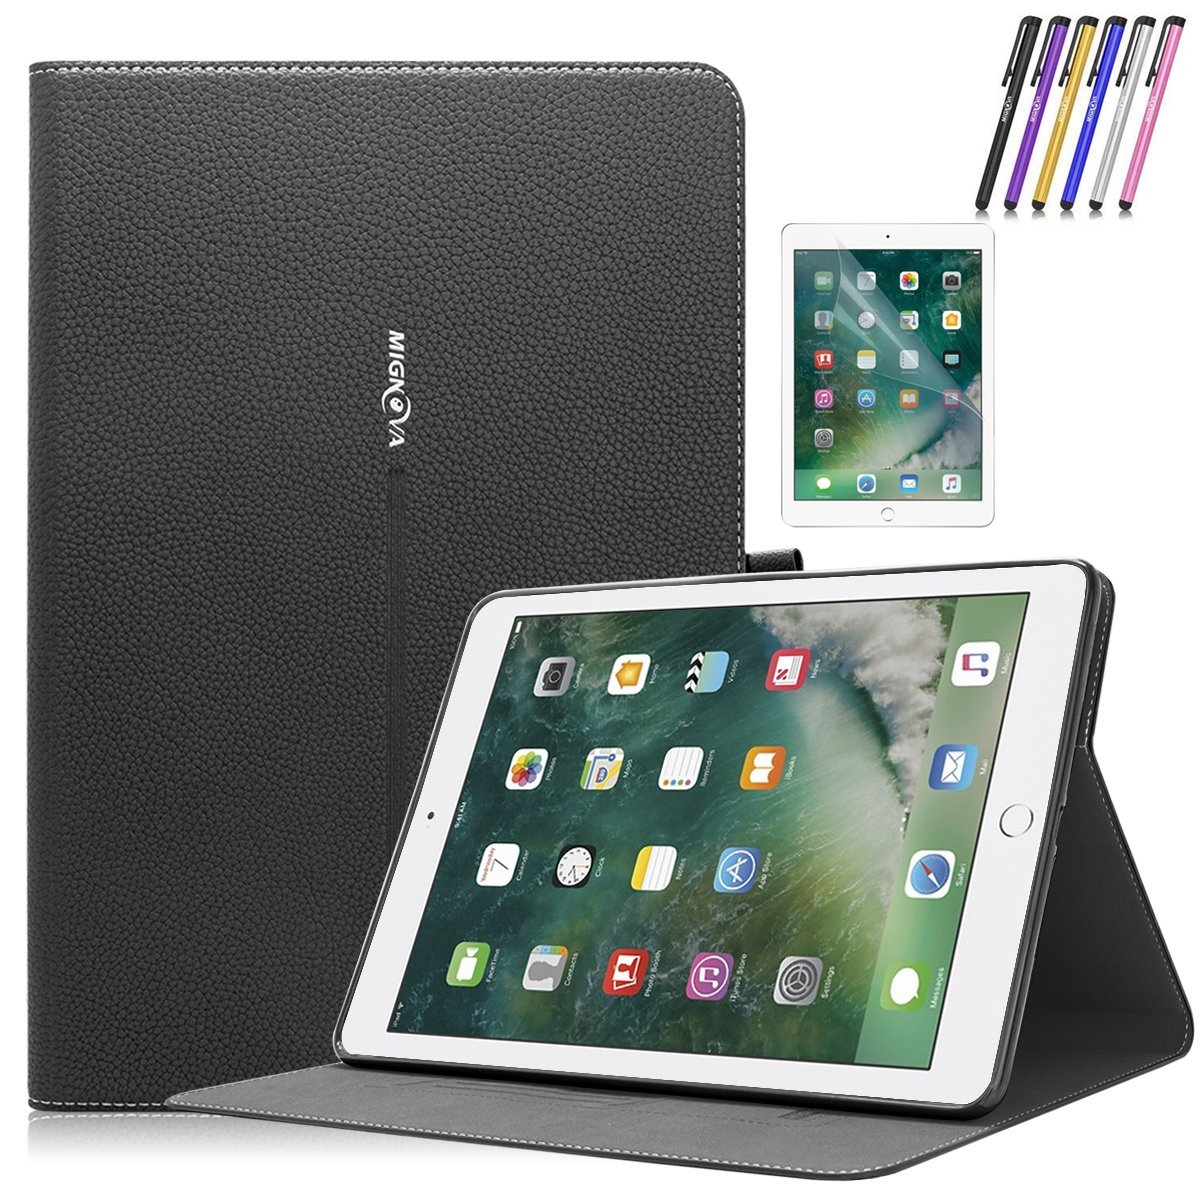 New iPad 9.7 inch Case, Mignova Premium PU Leather Folio Case Smart Cover with Auto Sleep / Wake for Apple iPad 5th 6th Generation 2017/2018 A1822/A1823 + Screen Protector Film and Stylus Pen (Black)